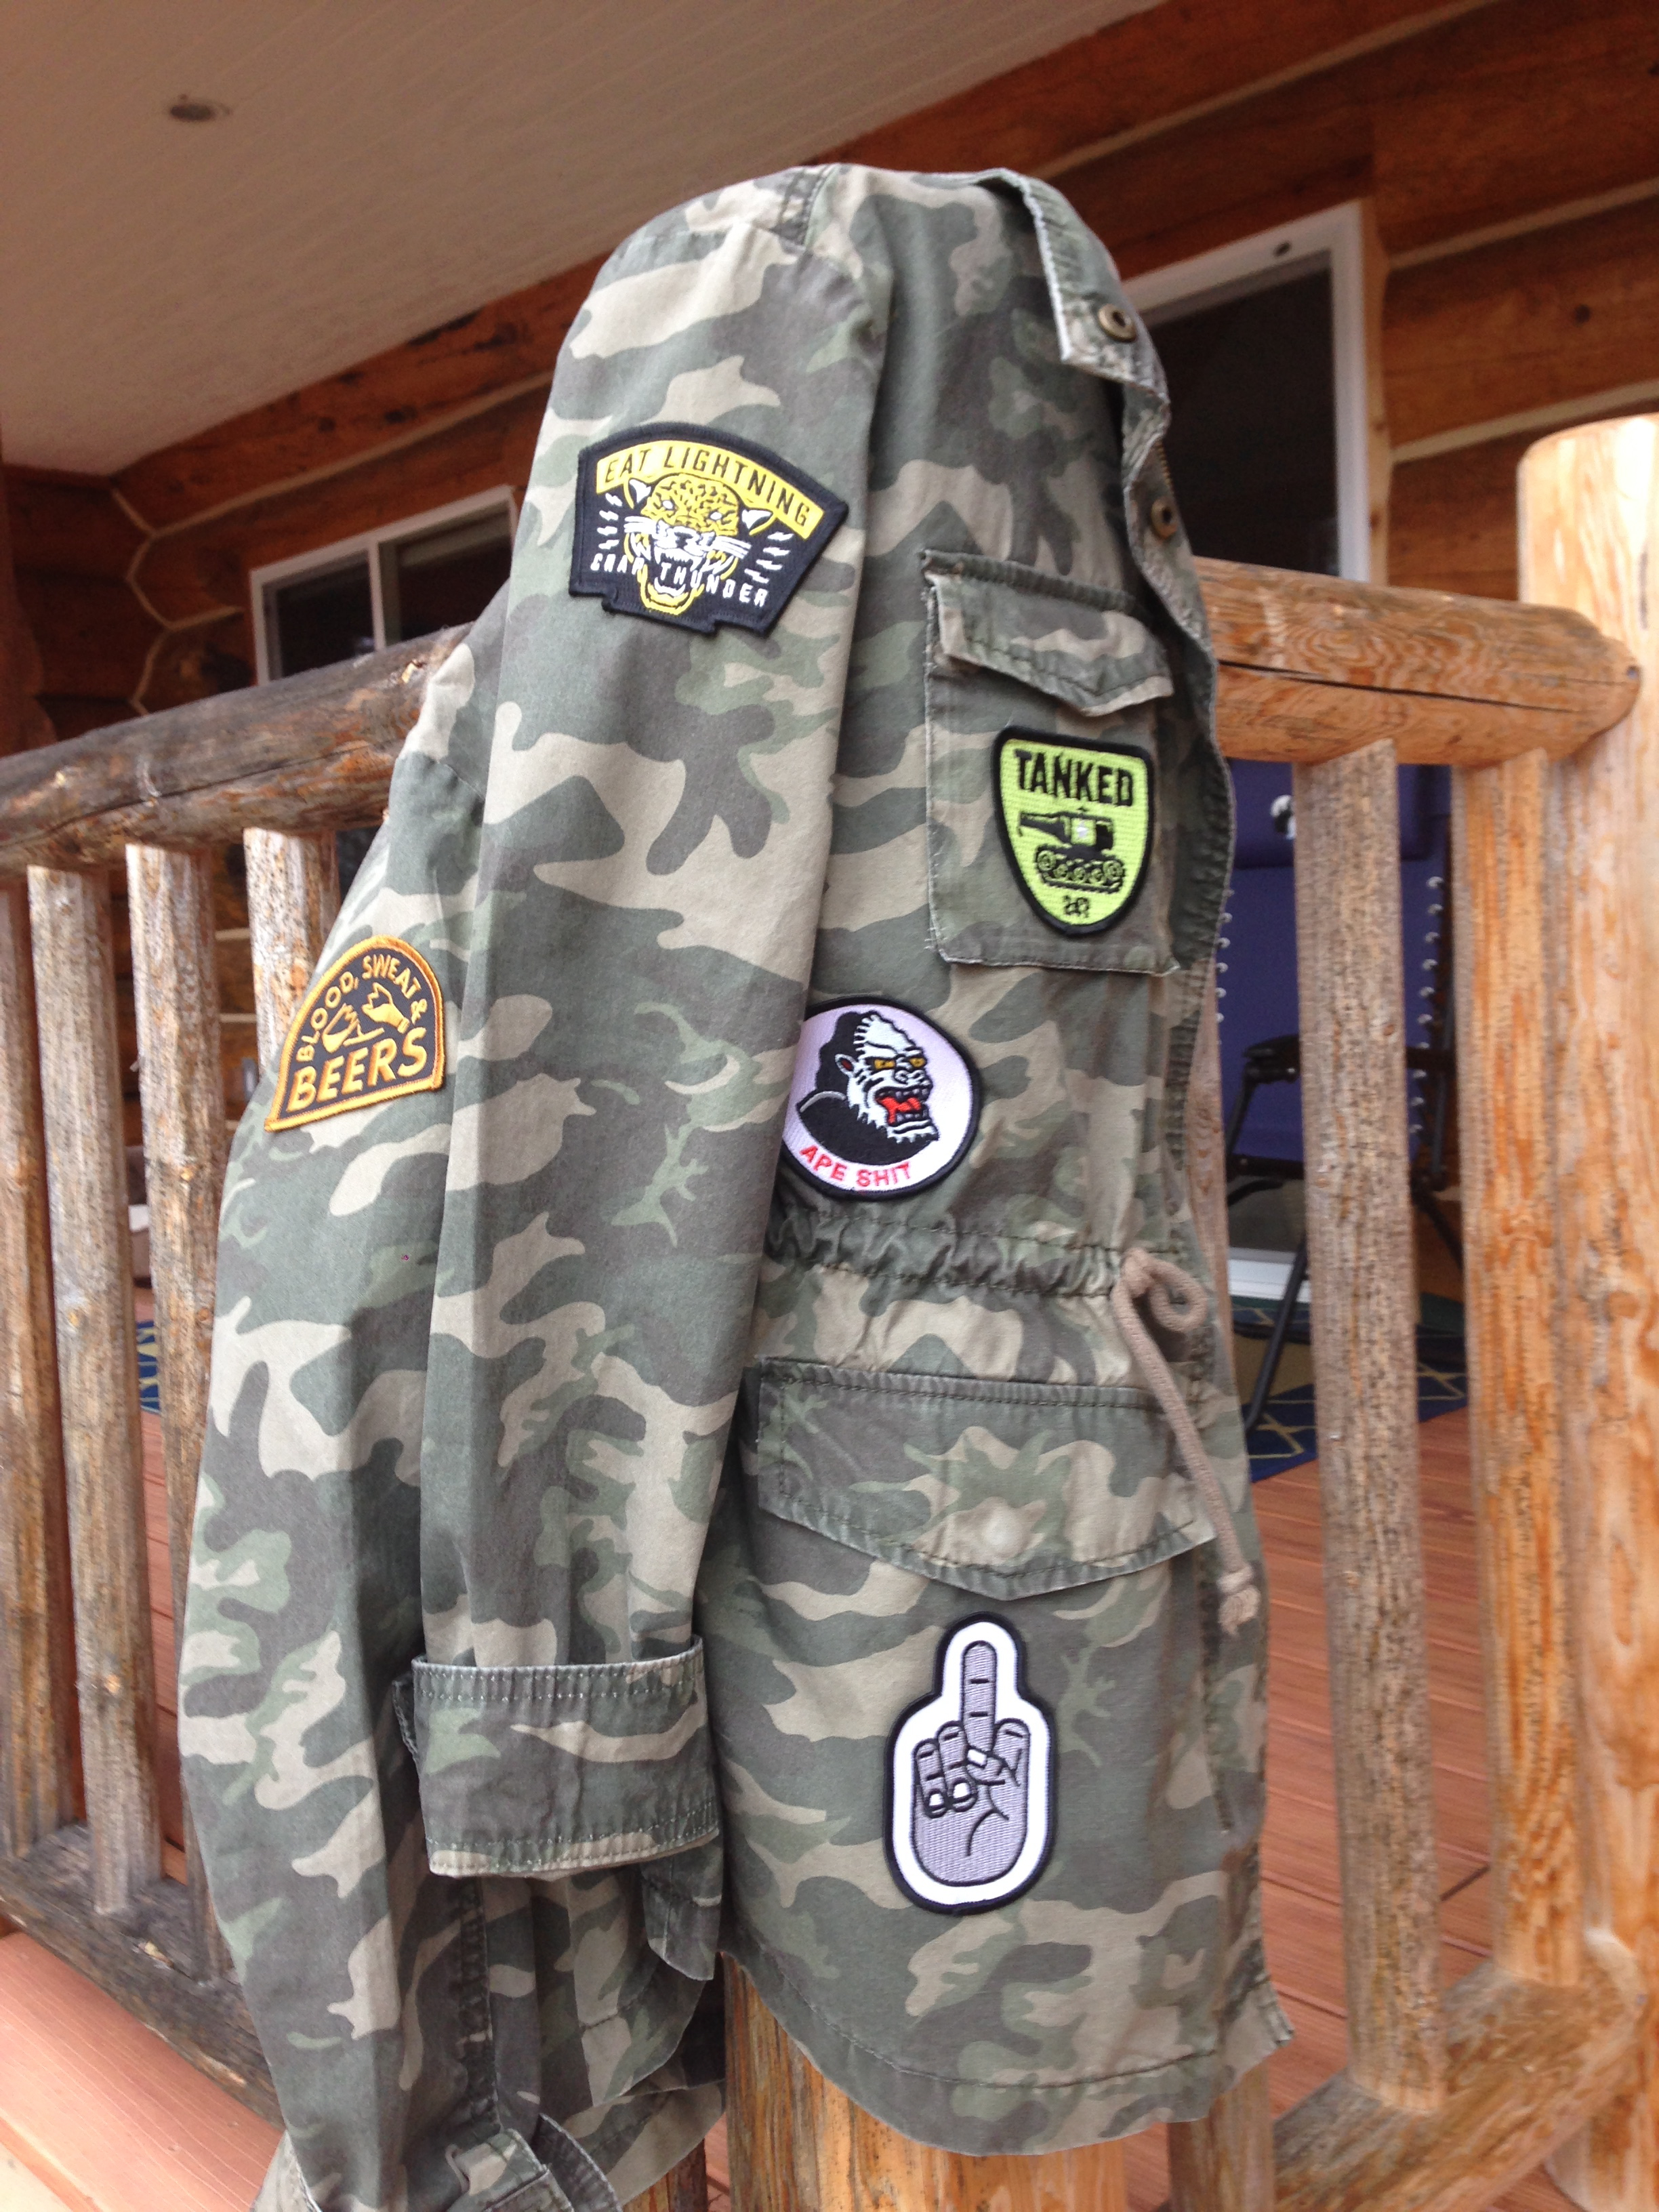 A few more patches from Reverecompany.com